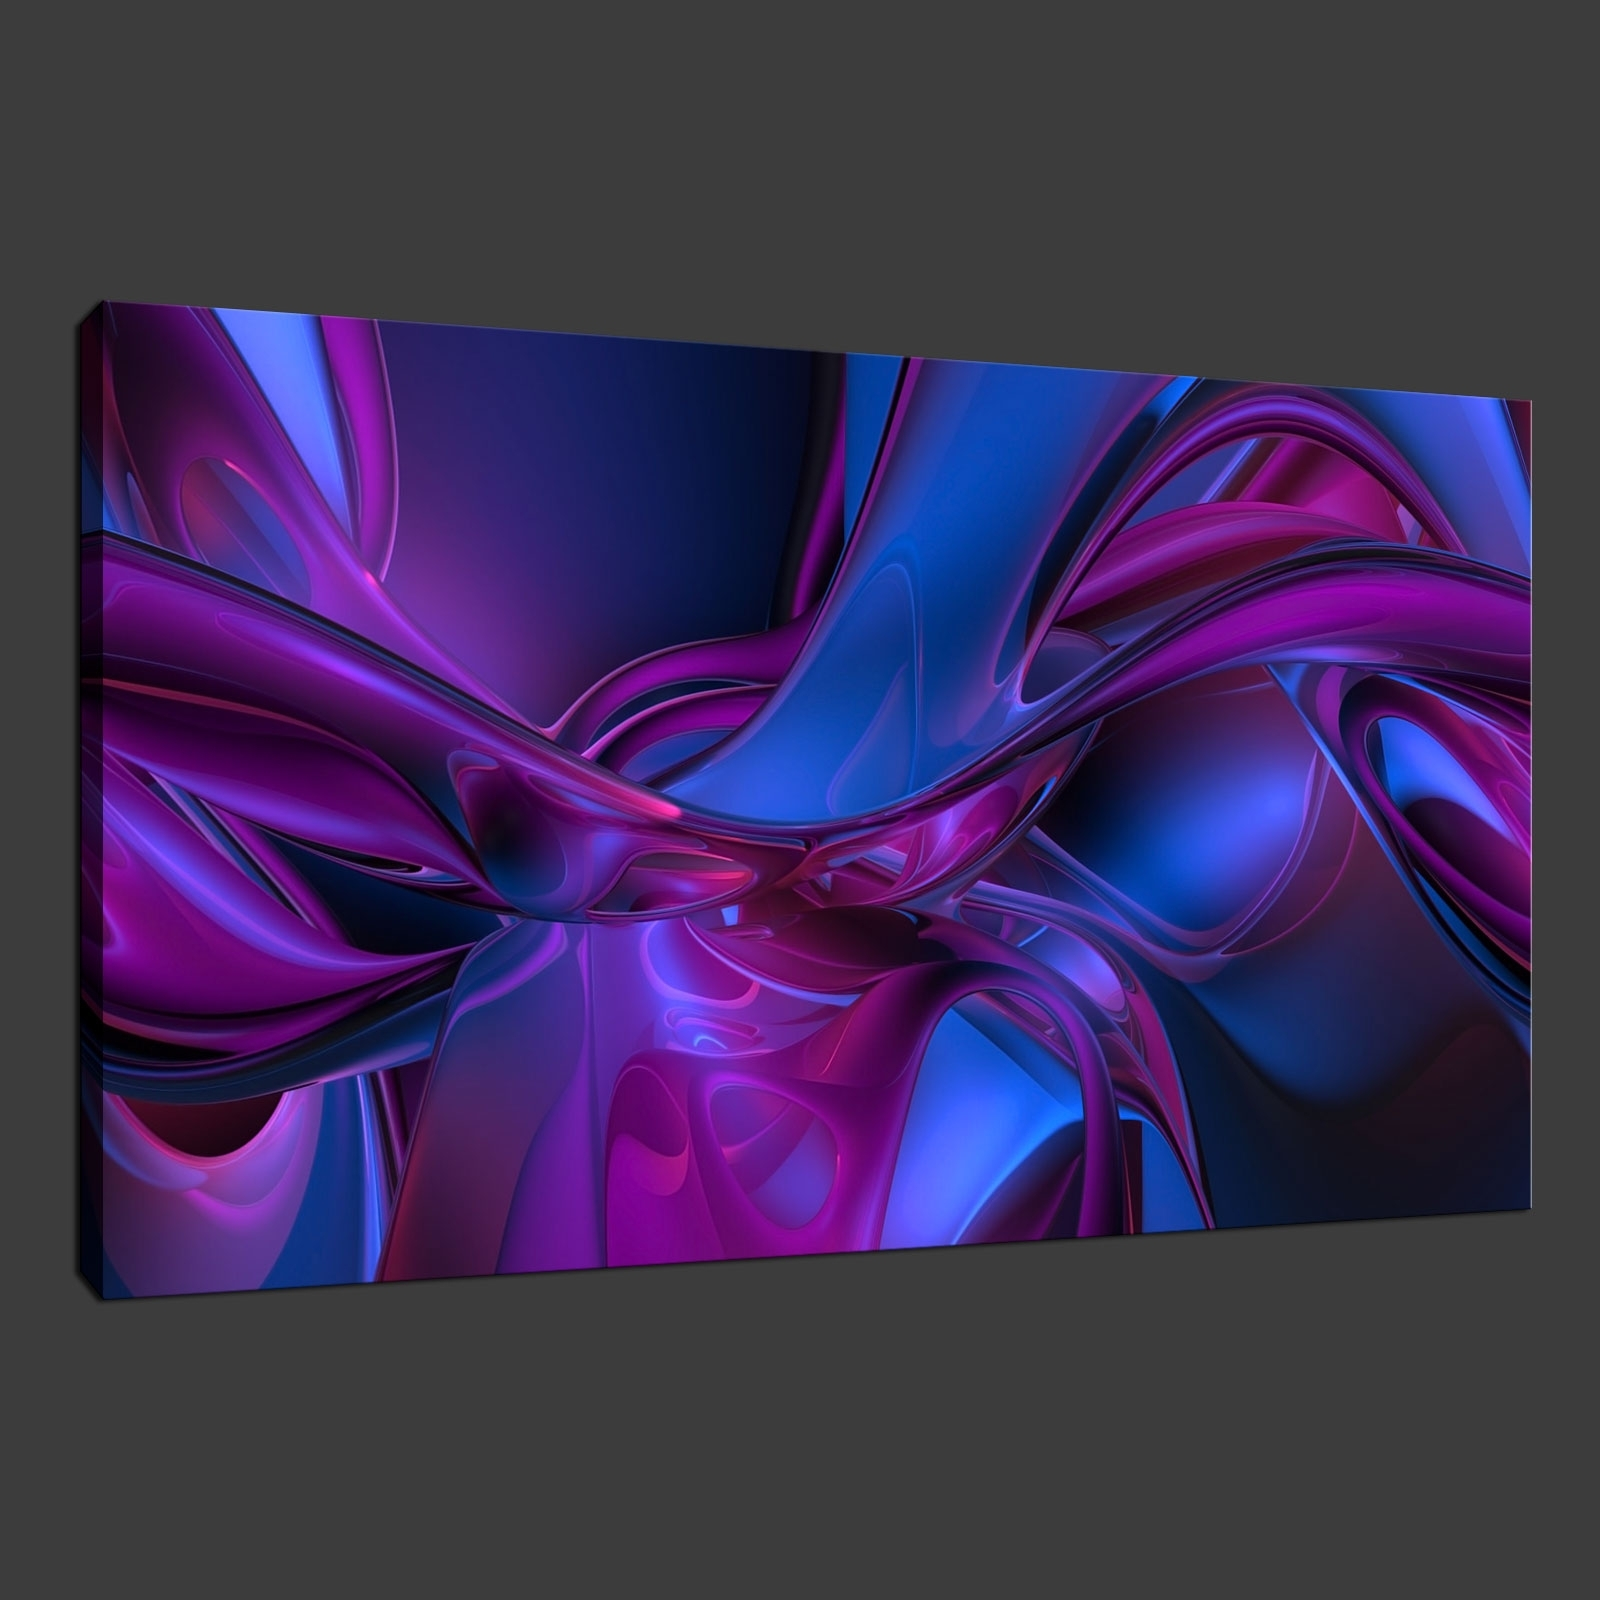 Most Recently Released Purple Wall Art Canvas for Purple Blue Abstract Premium Canvas Print Wall Art Modern Design